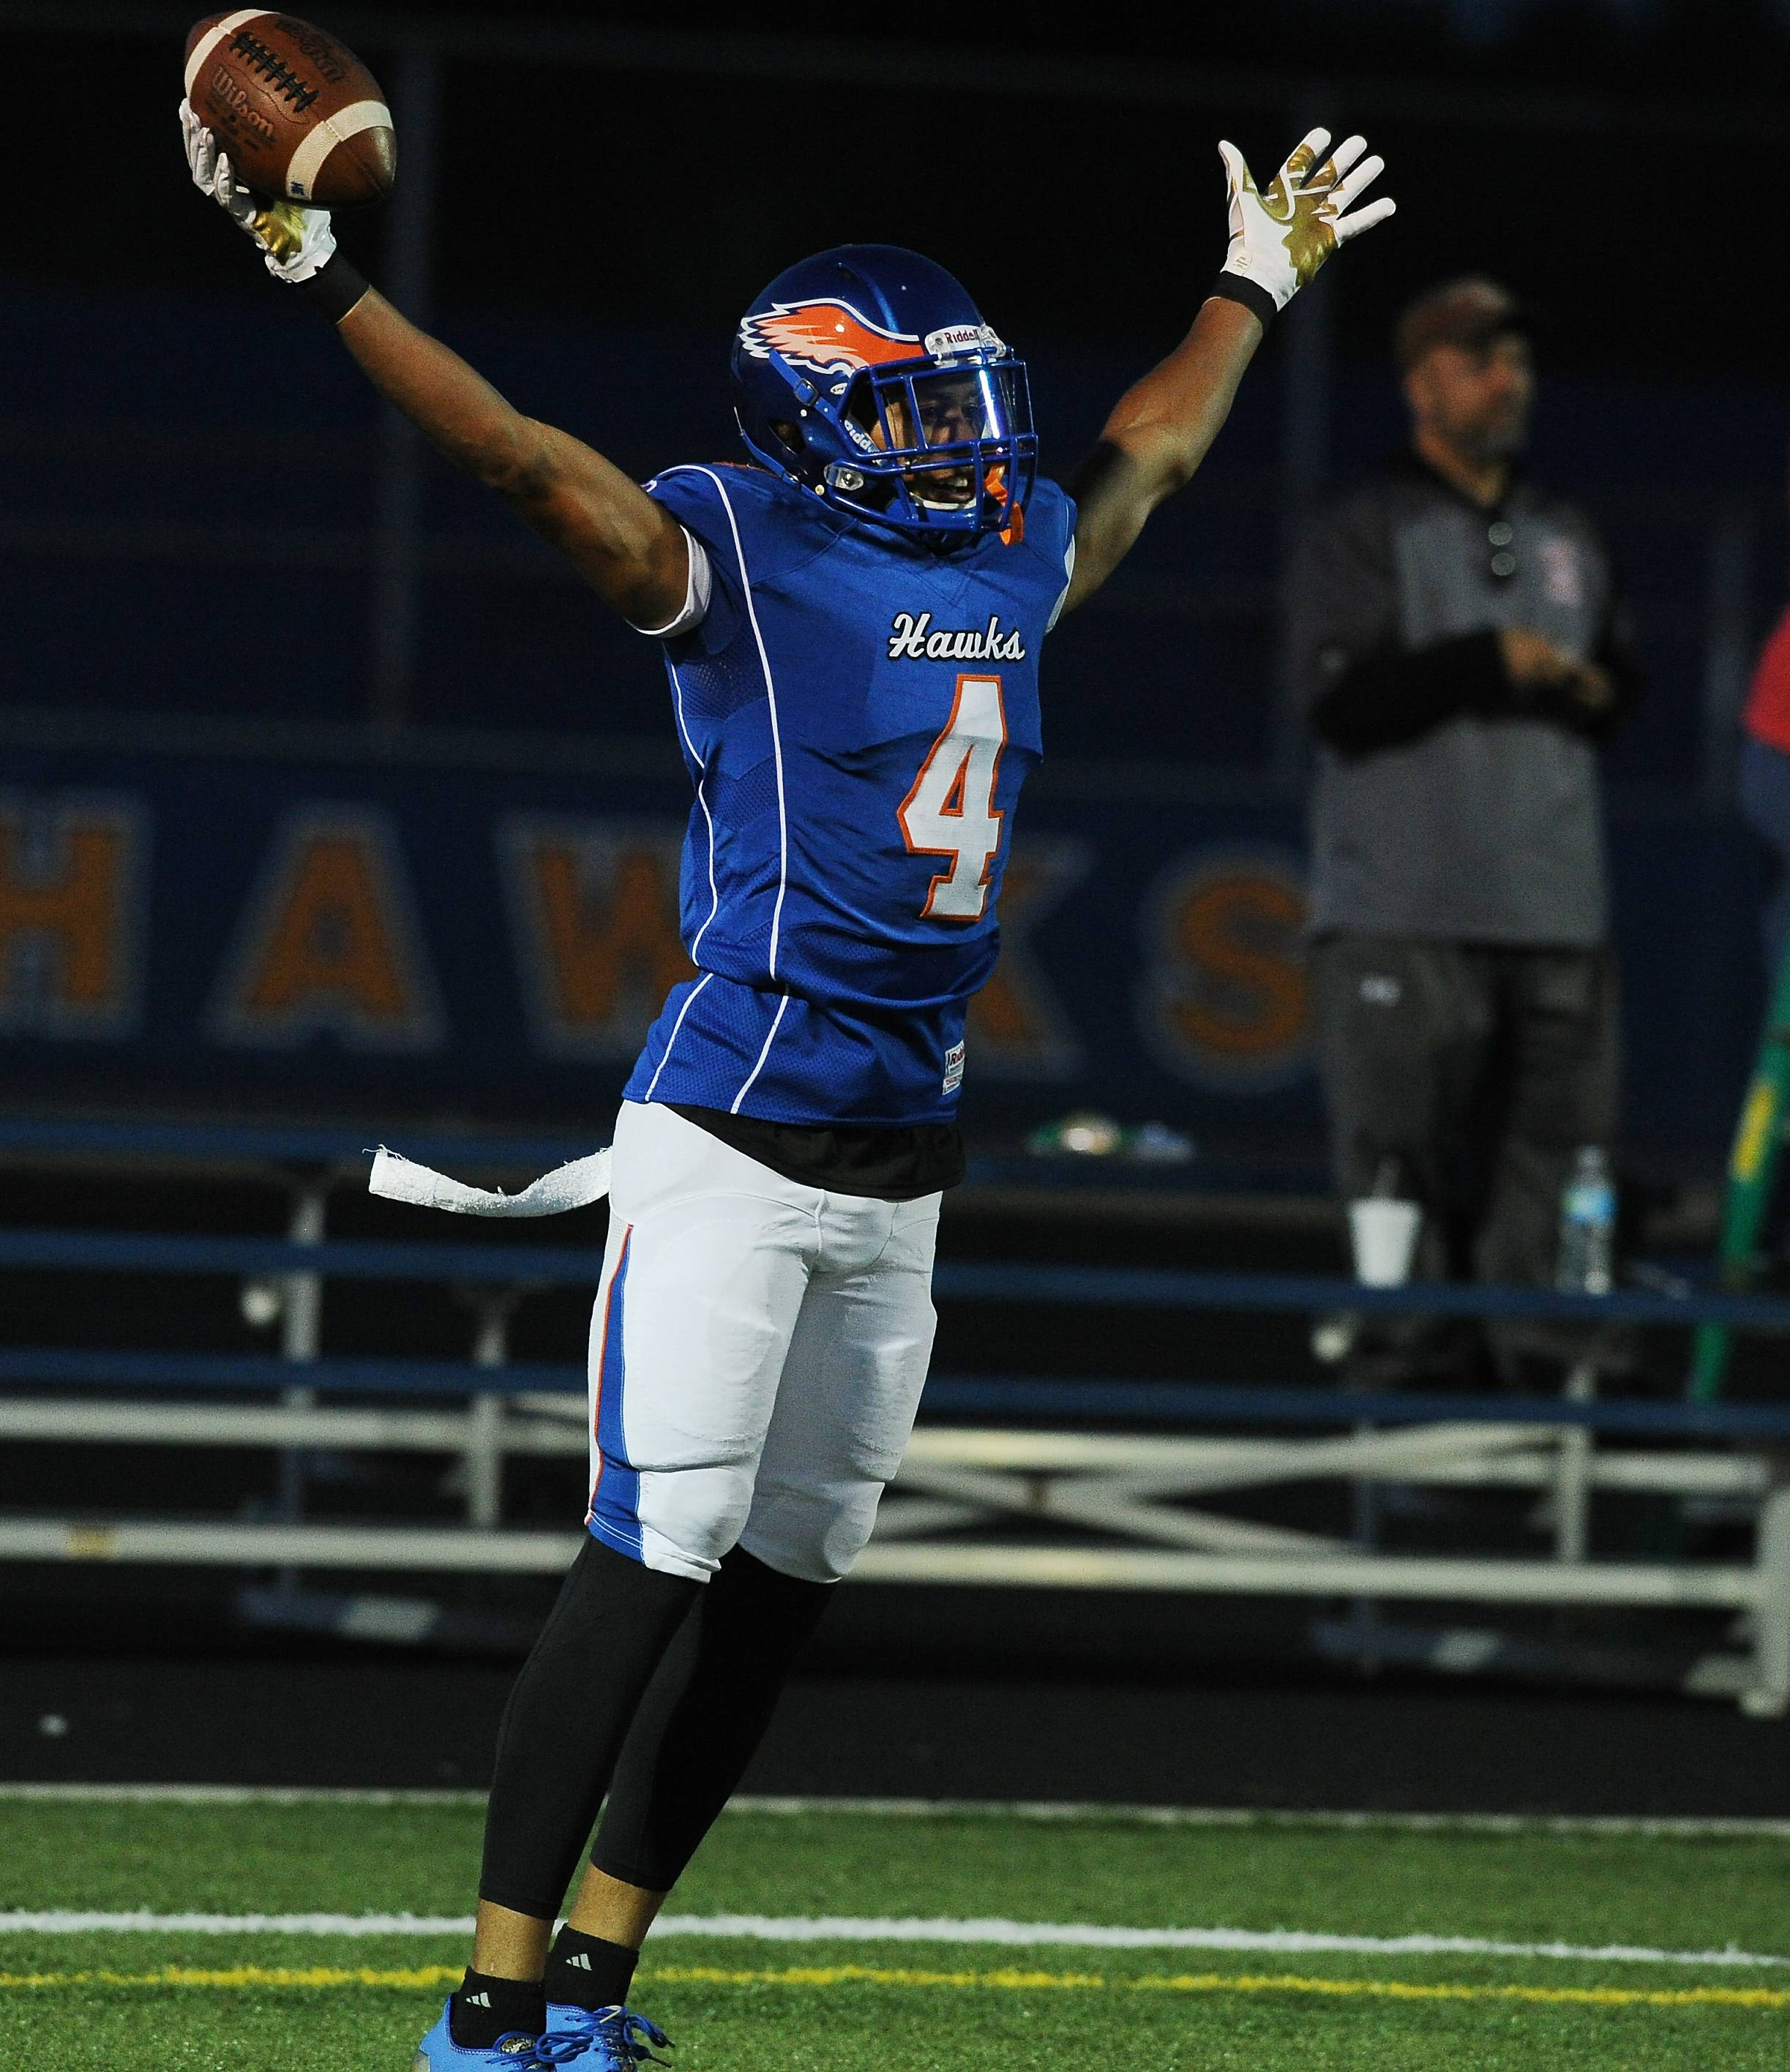 Images: Hoffman Estates over Hersey,16-10 in football